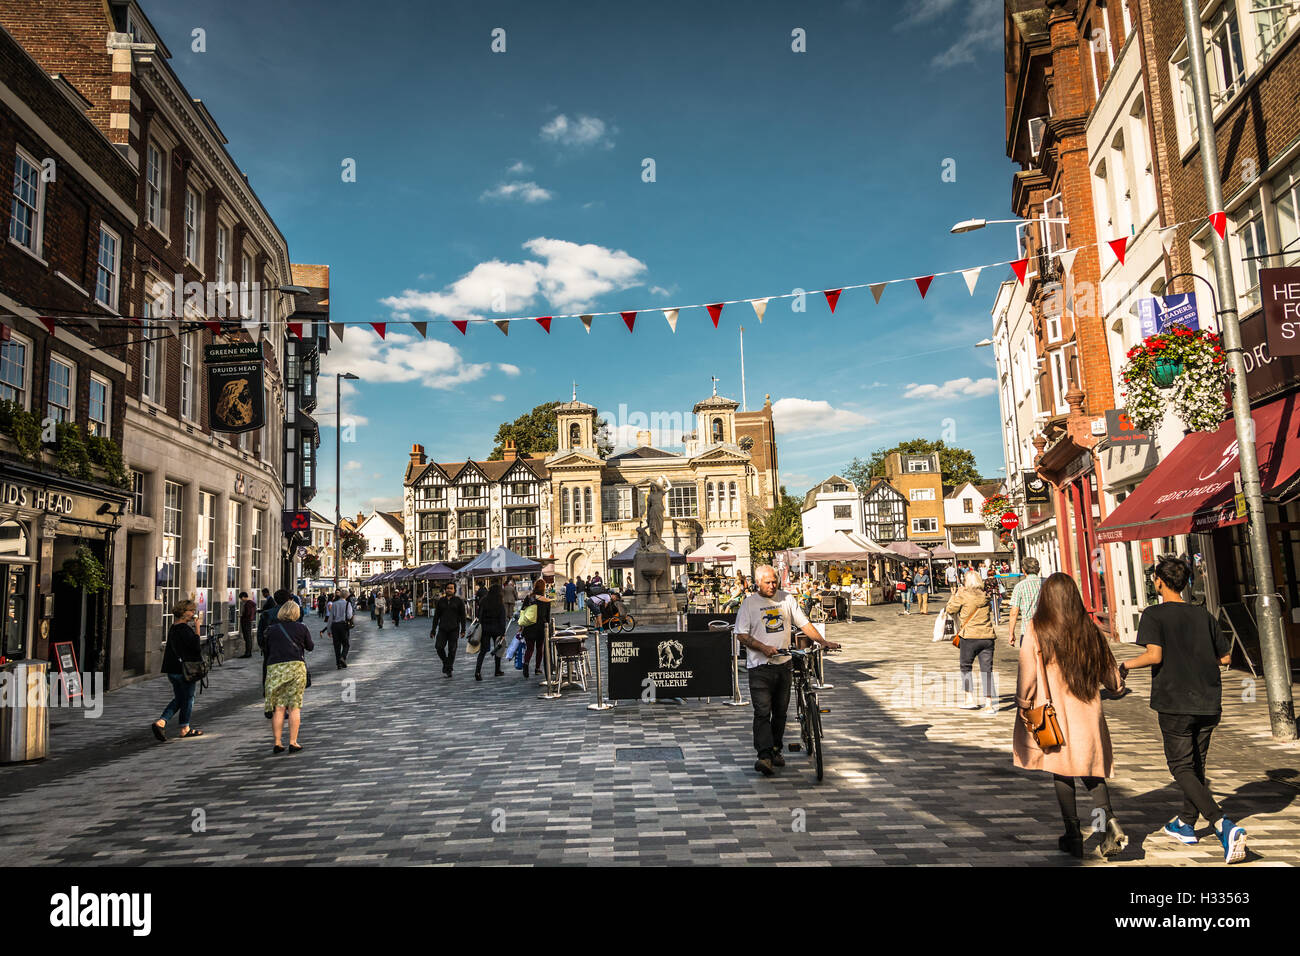 Kingston-Upon-Thames in Surrey, England, UK Stock Photo